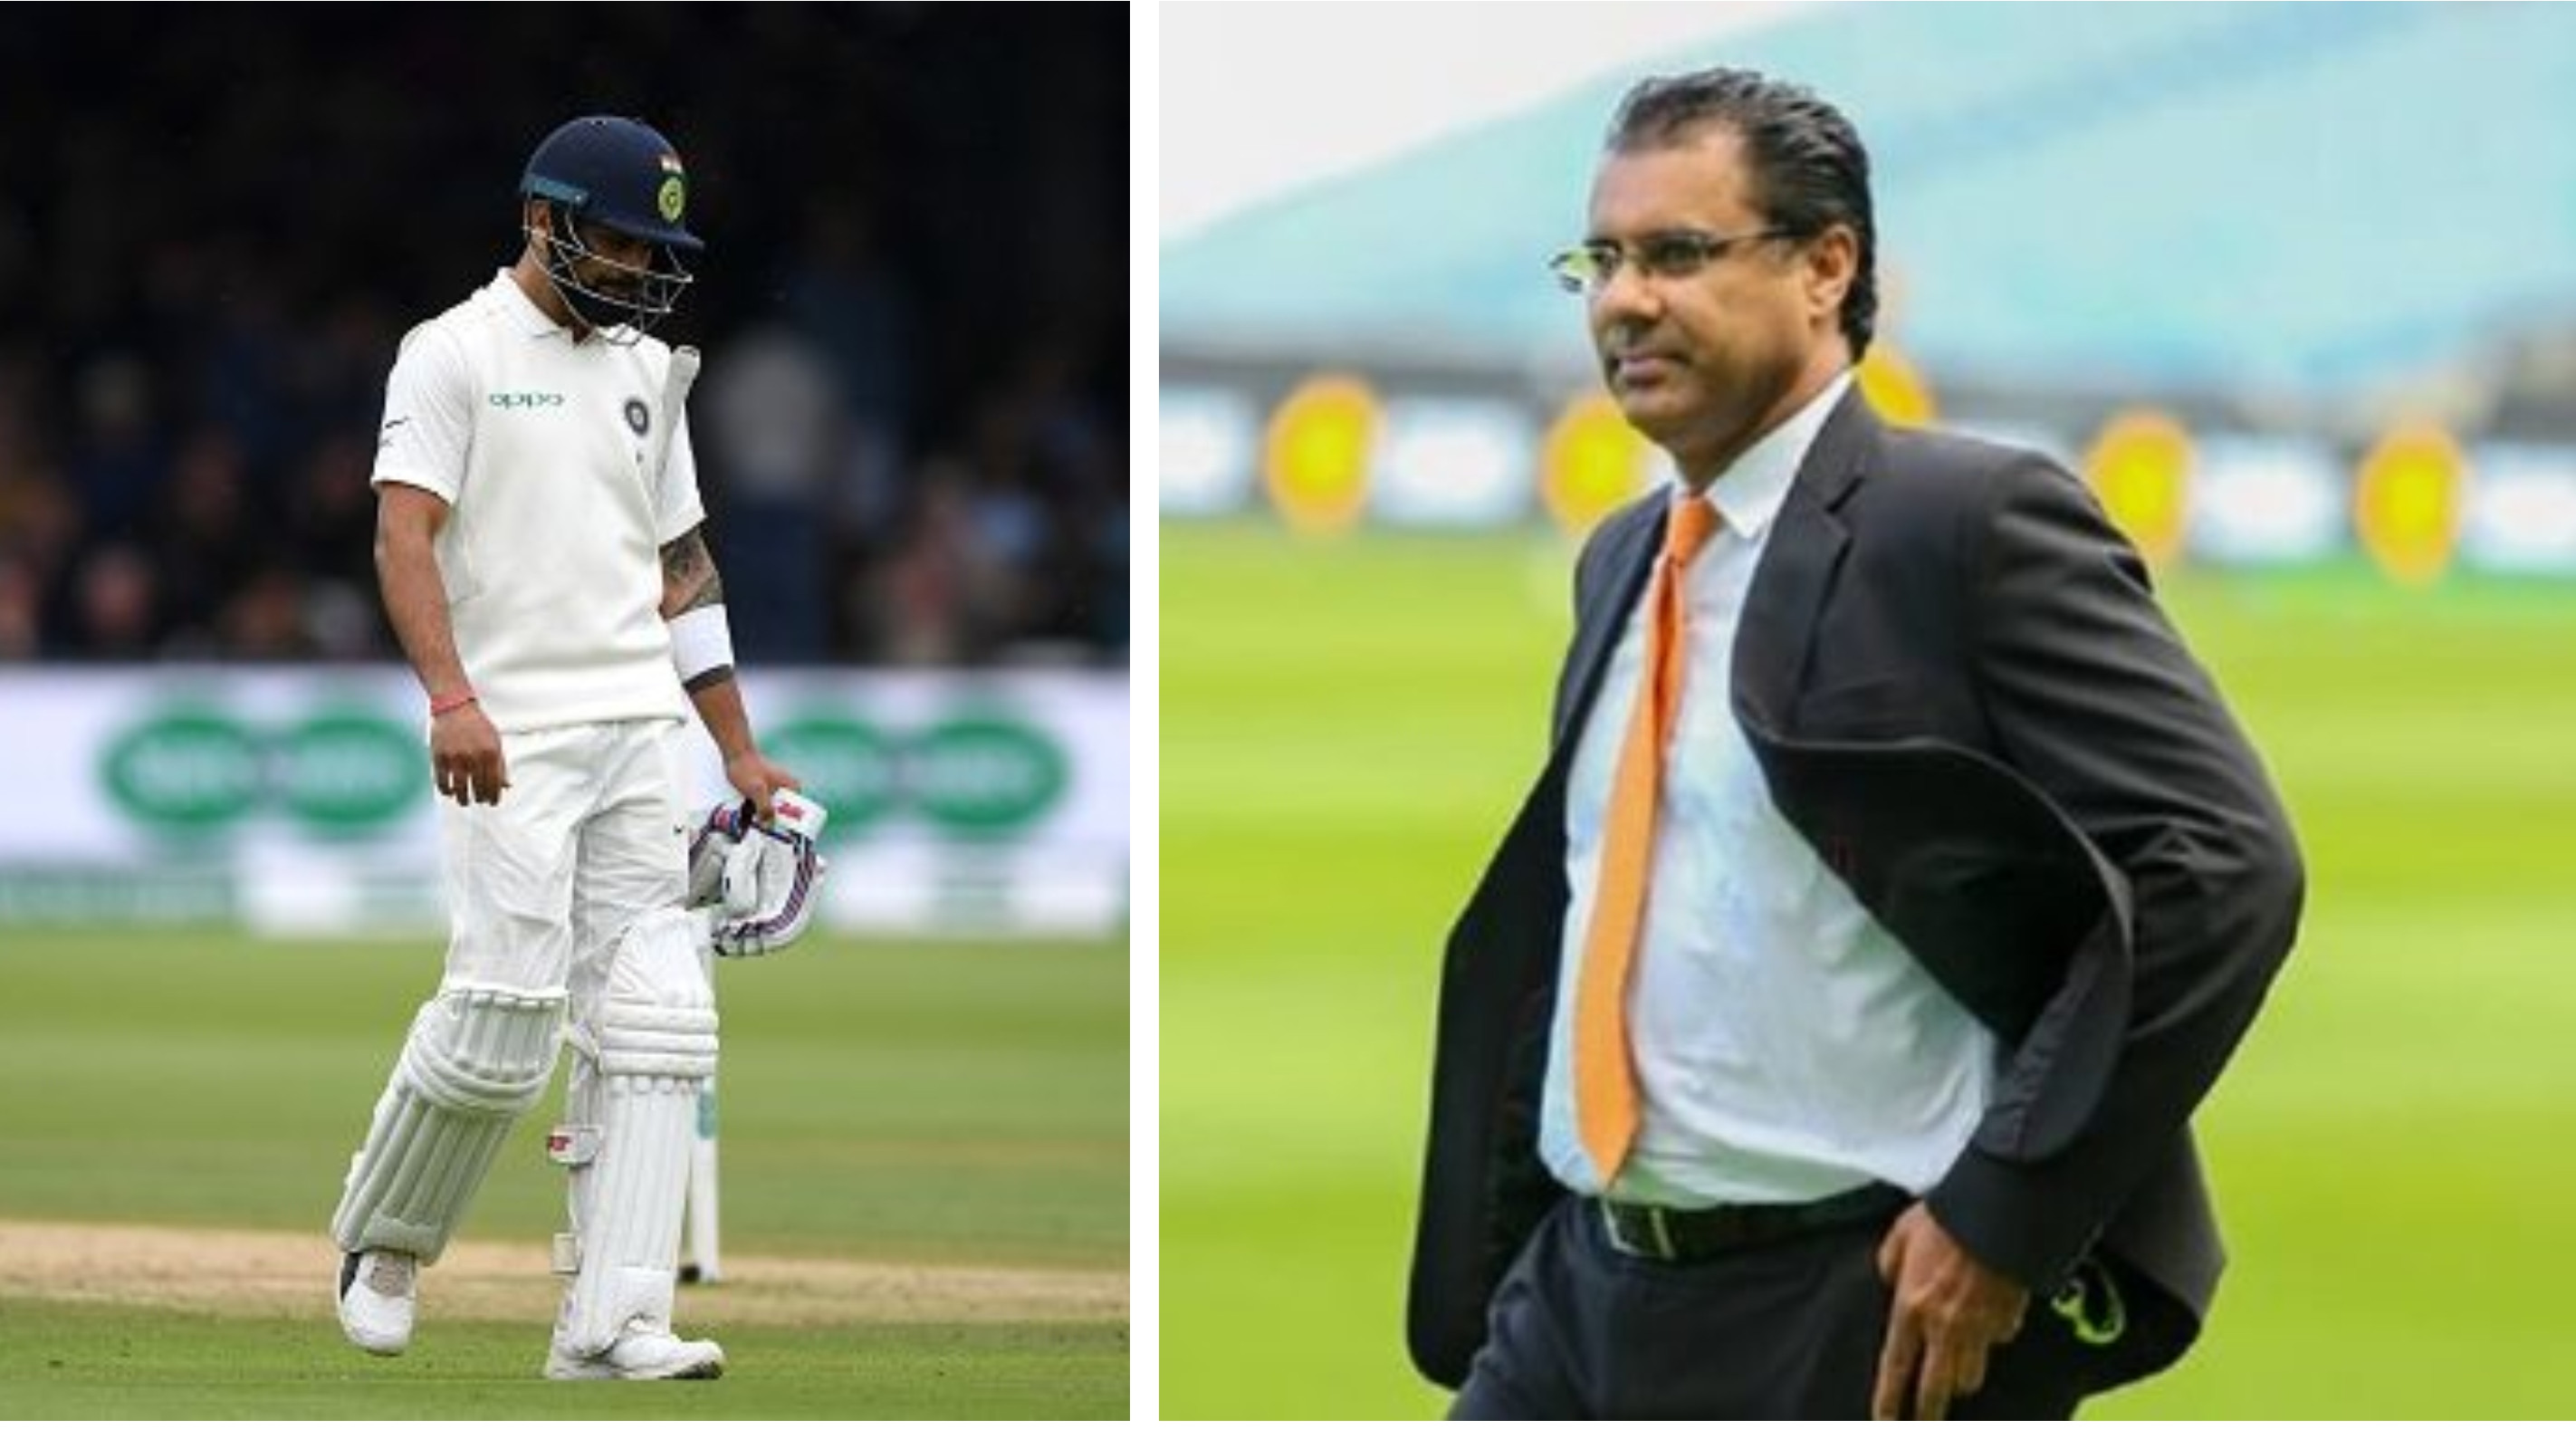 ENG v IND 2018: Waqar Younis backs India for comeback in Test series despite Lord's defeat